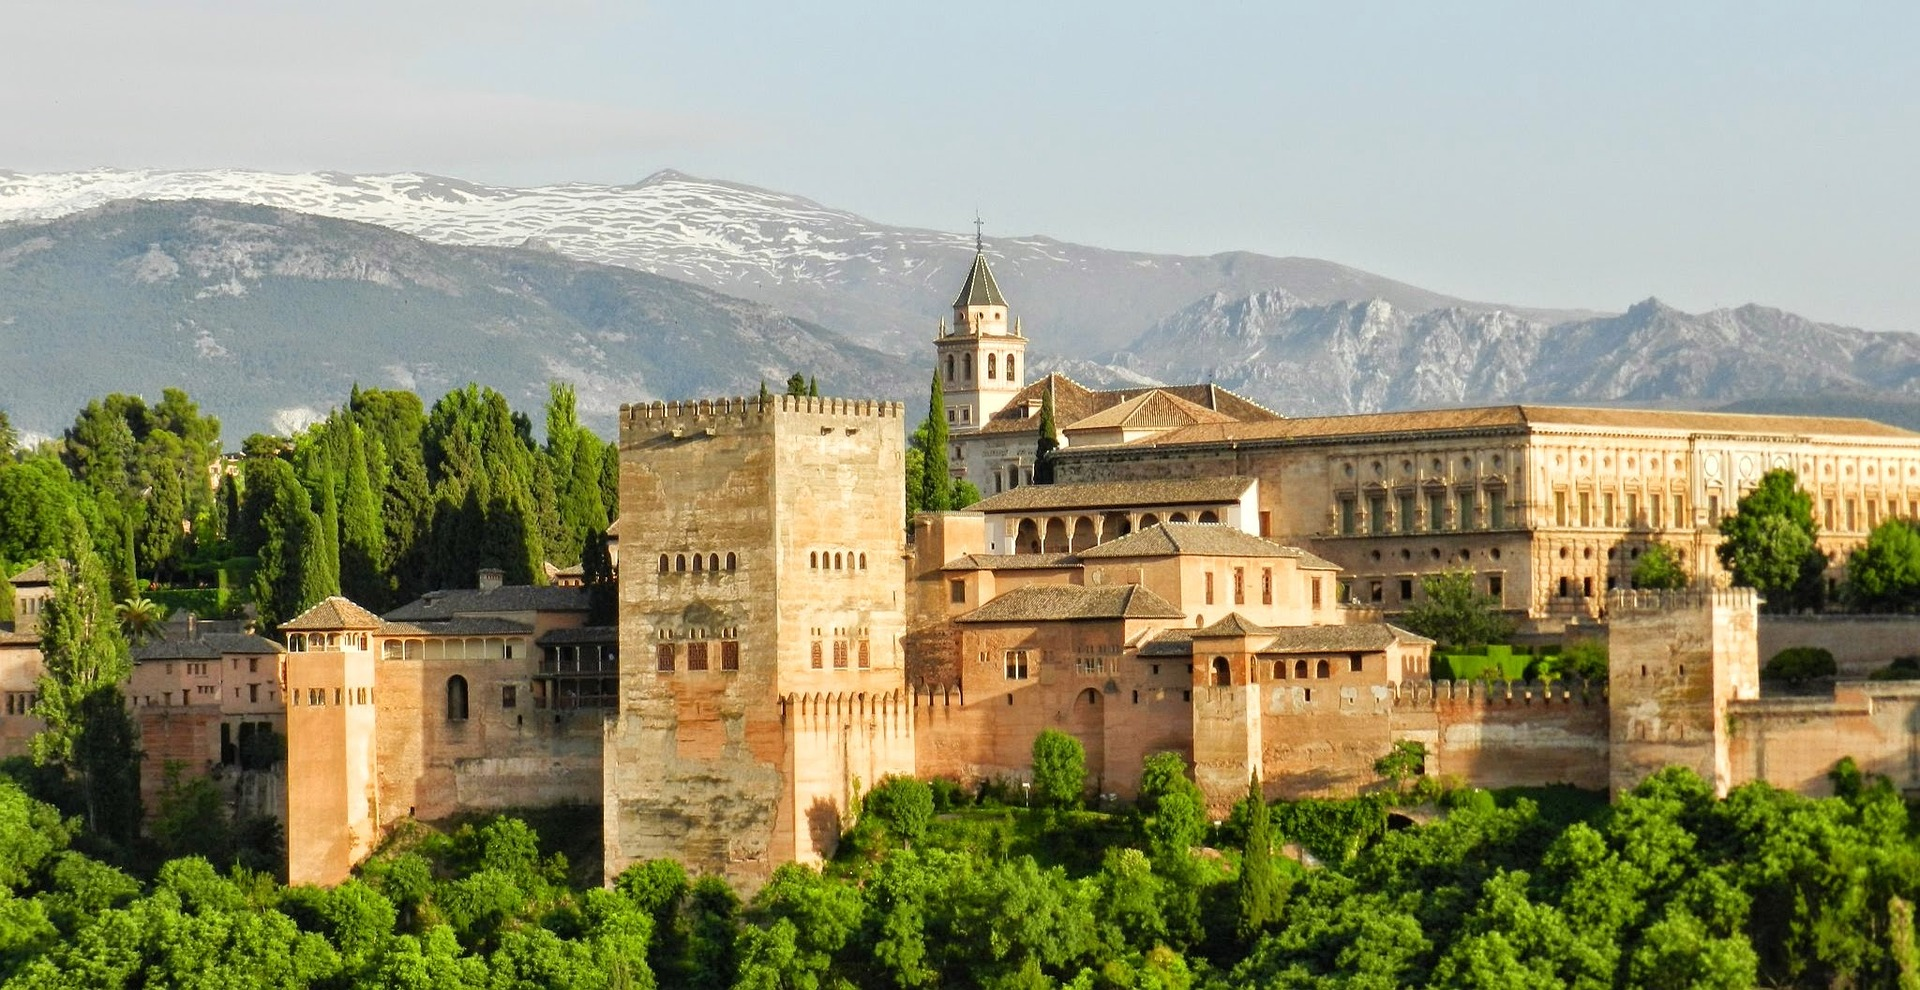 Day trip to Granada with guided visit to the Alhambra